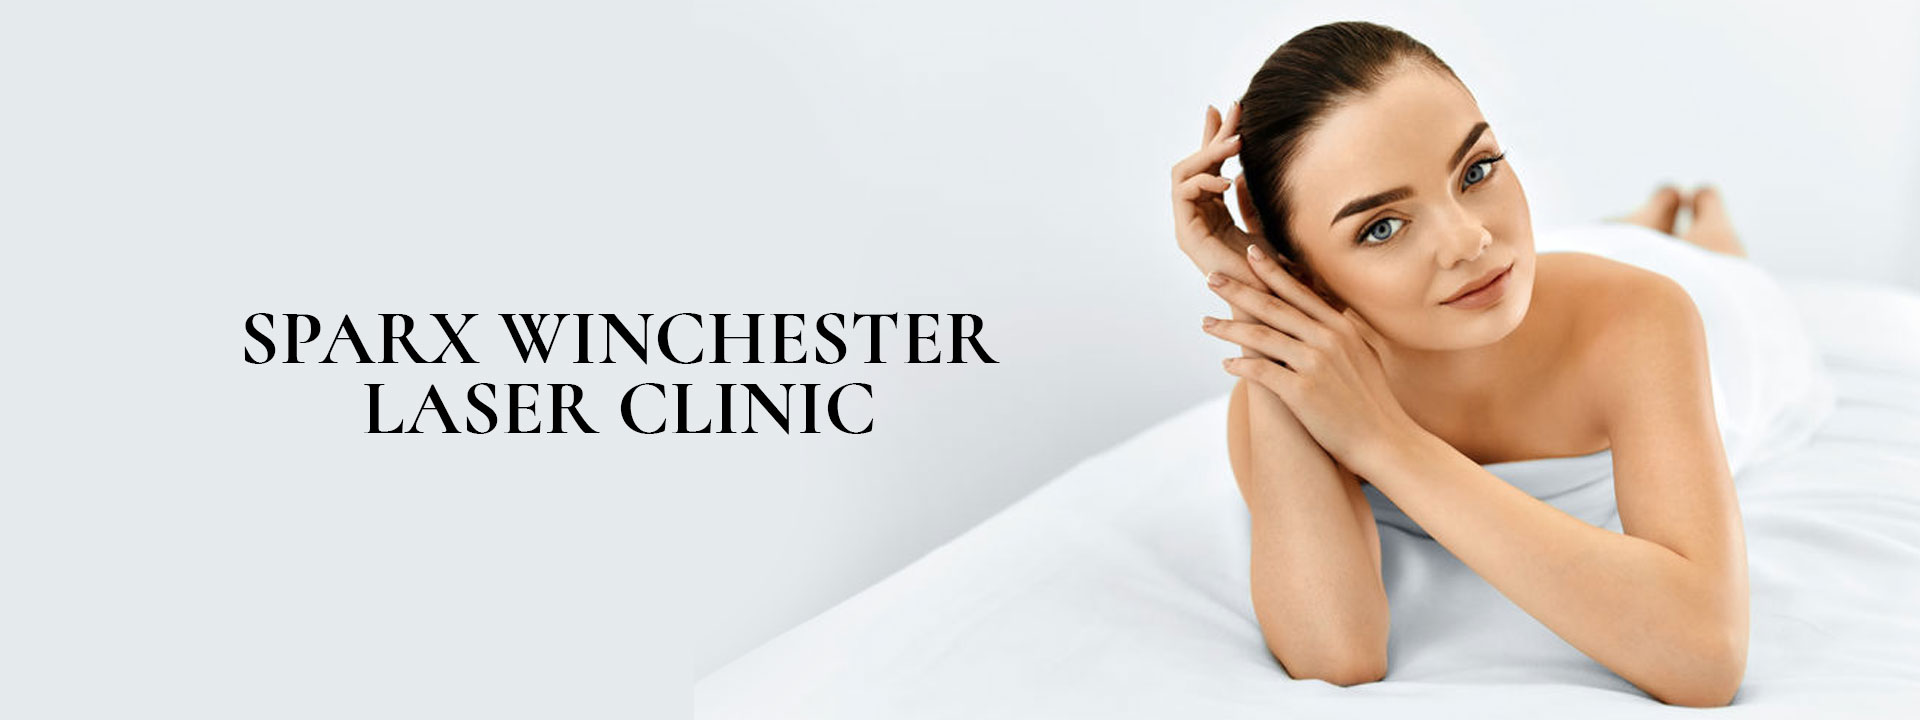 Sparx Winchester Laser Clinic banner